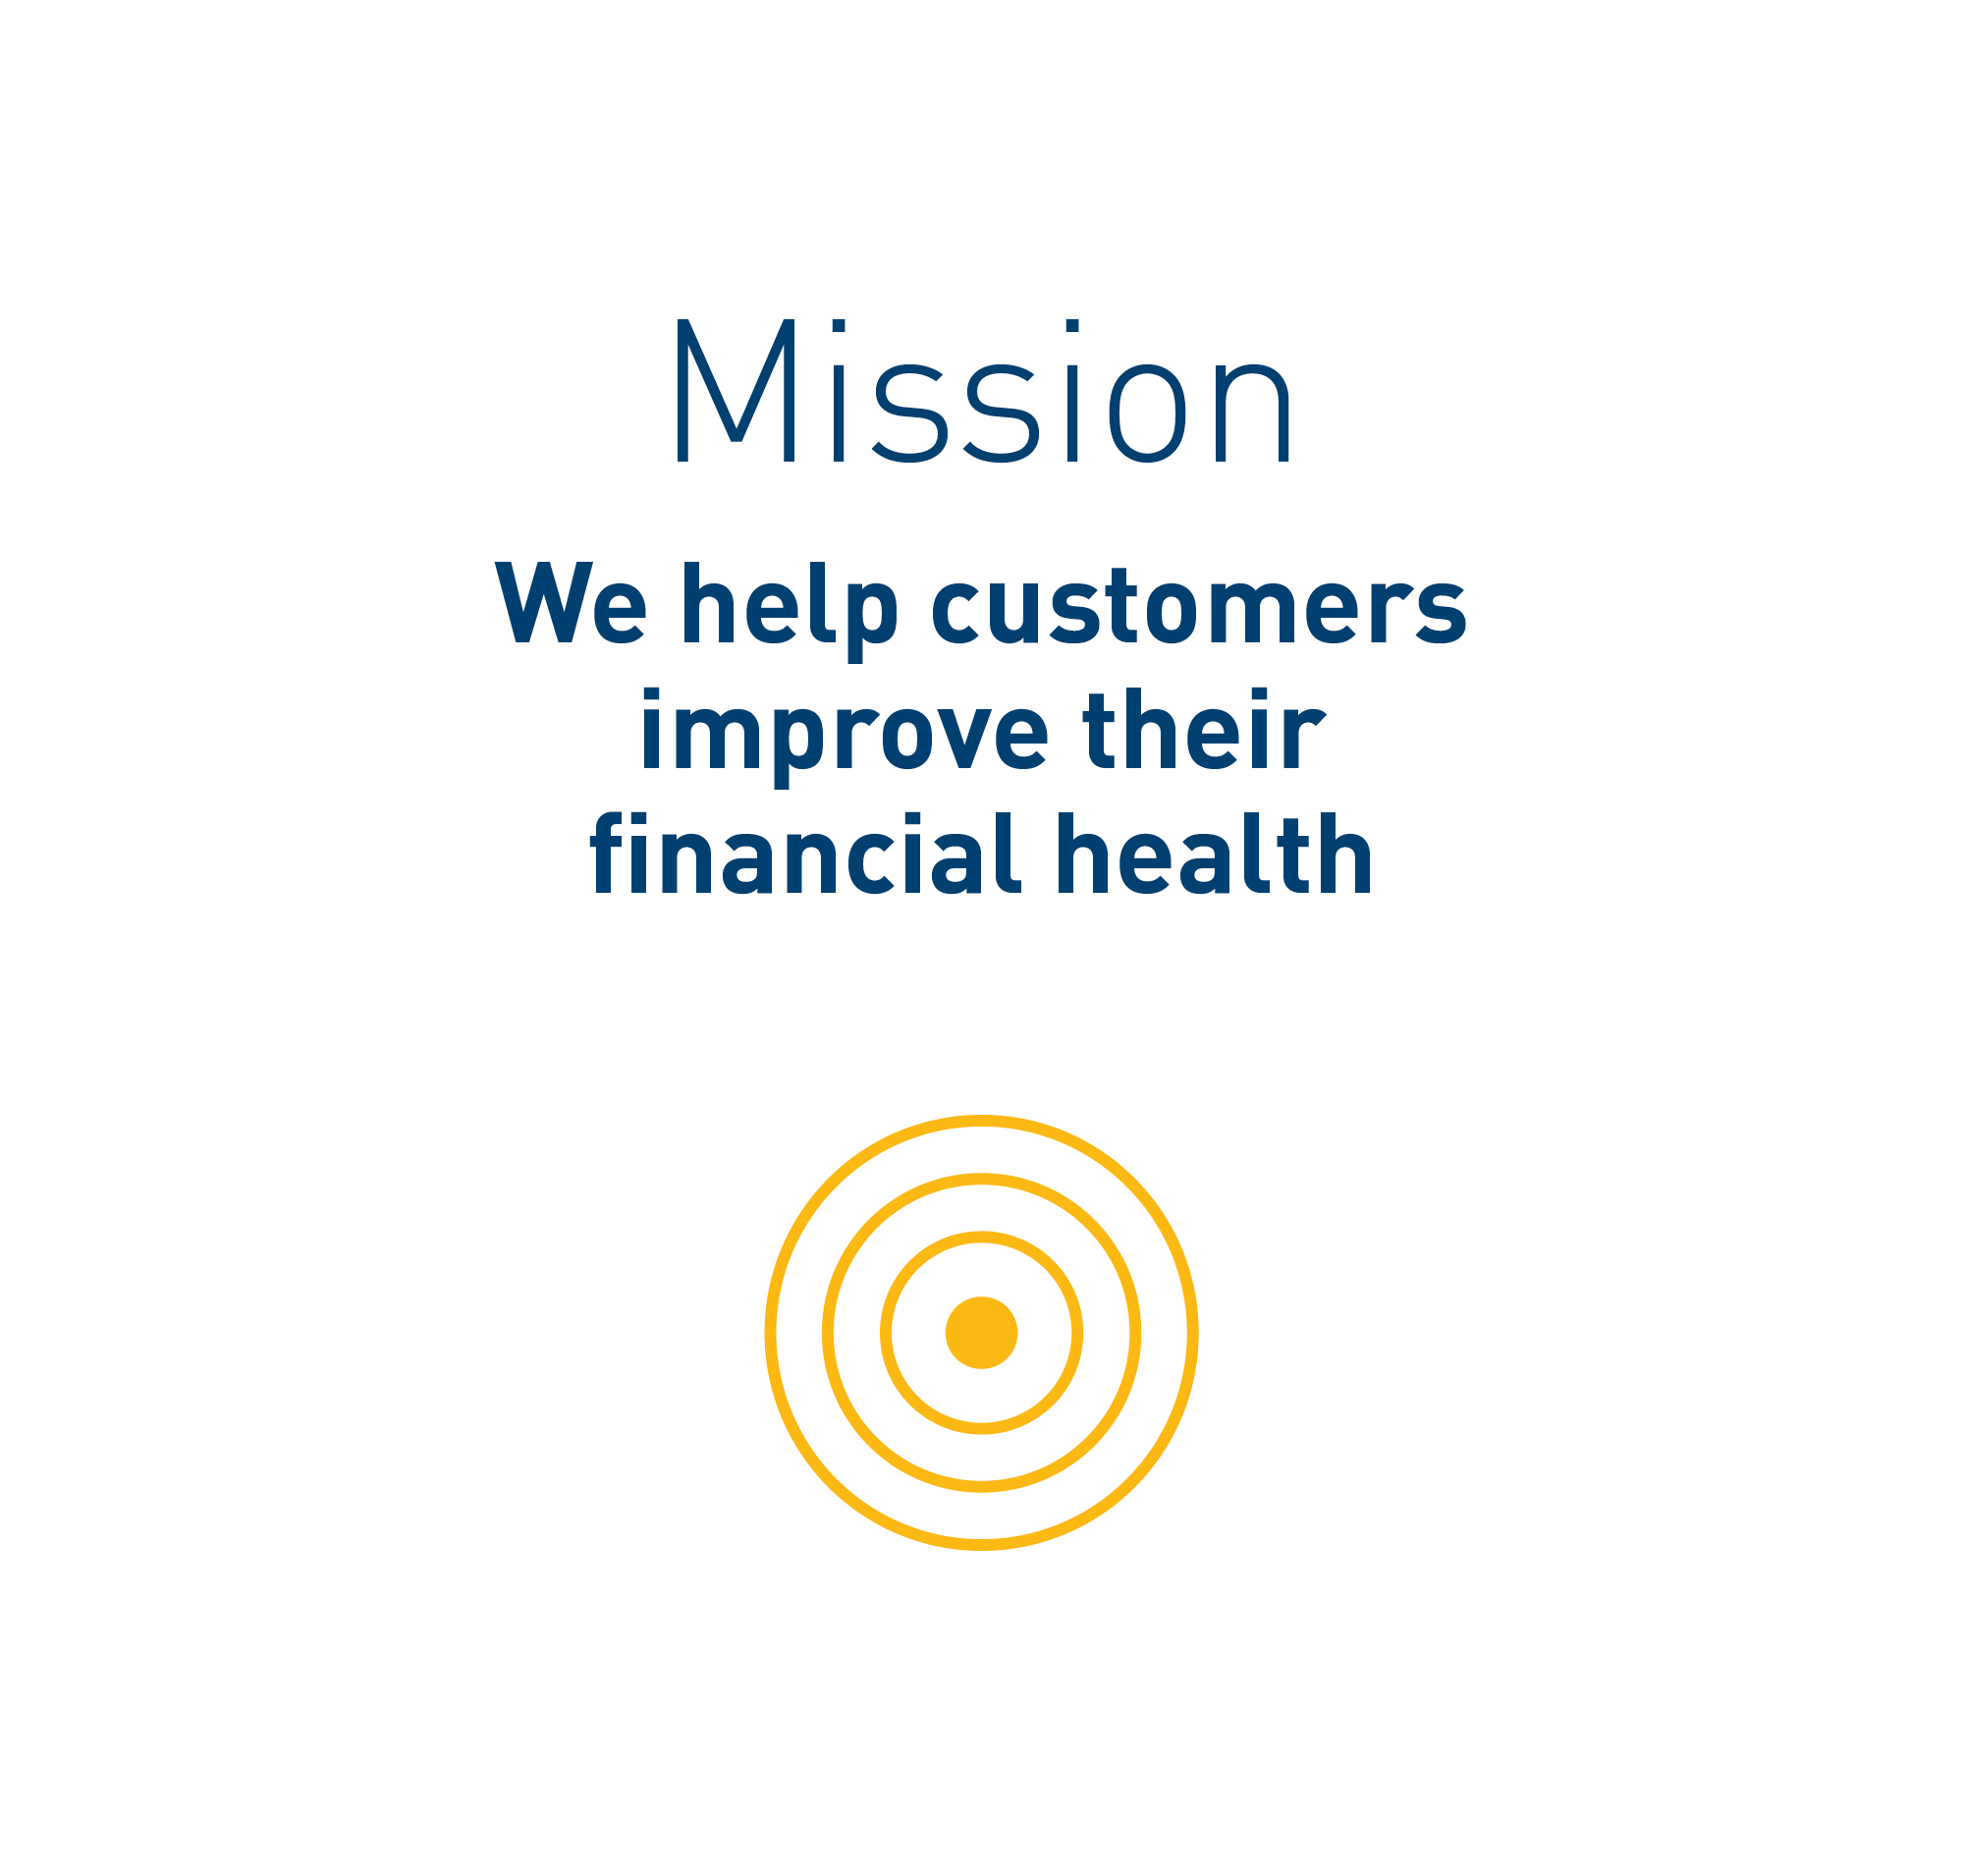 Text in image: Mission – we help customers improve their financial health.